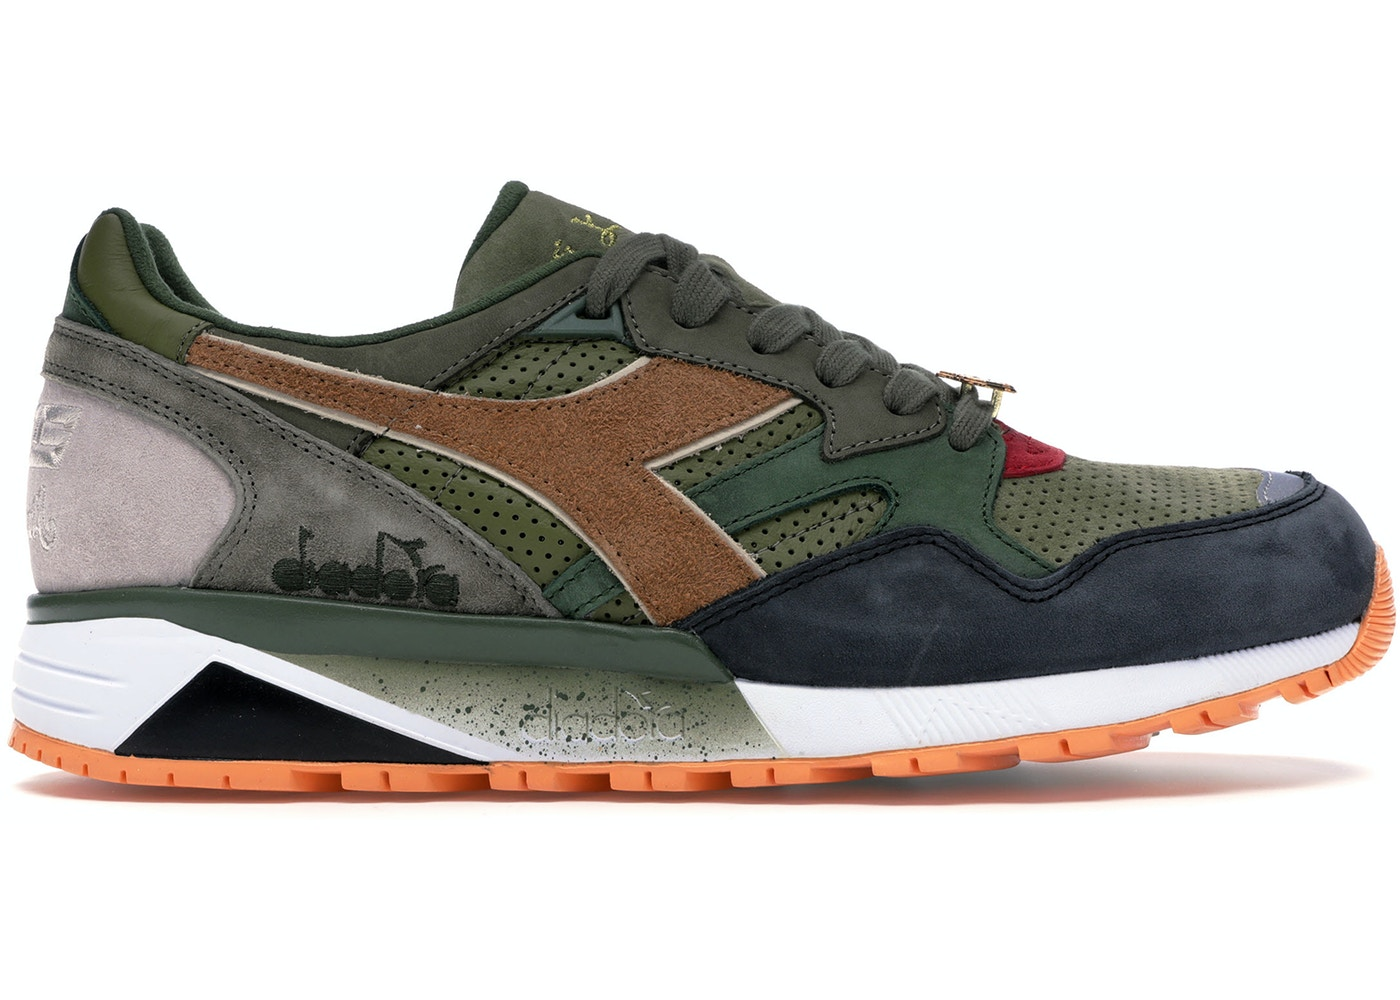 brand new 29eaf 847c6 Diadora N9002 24 Kilates x mita x Mighty Crown Respect Over Hate